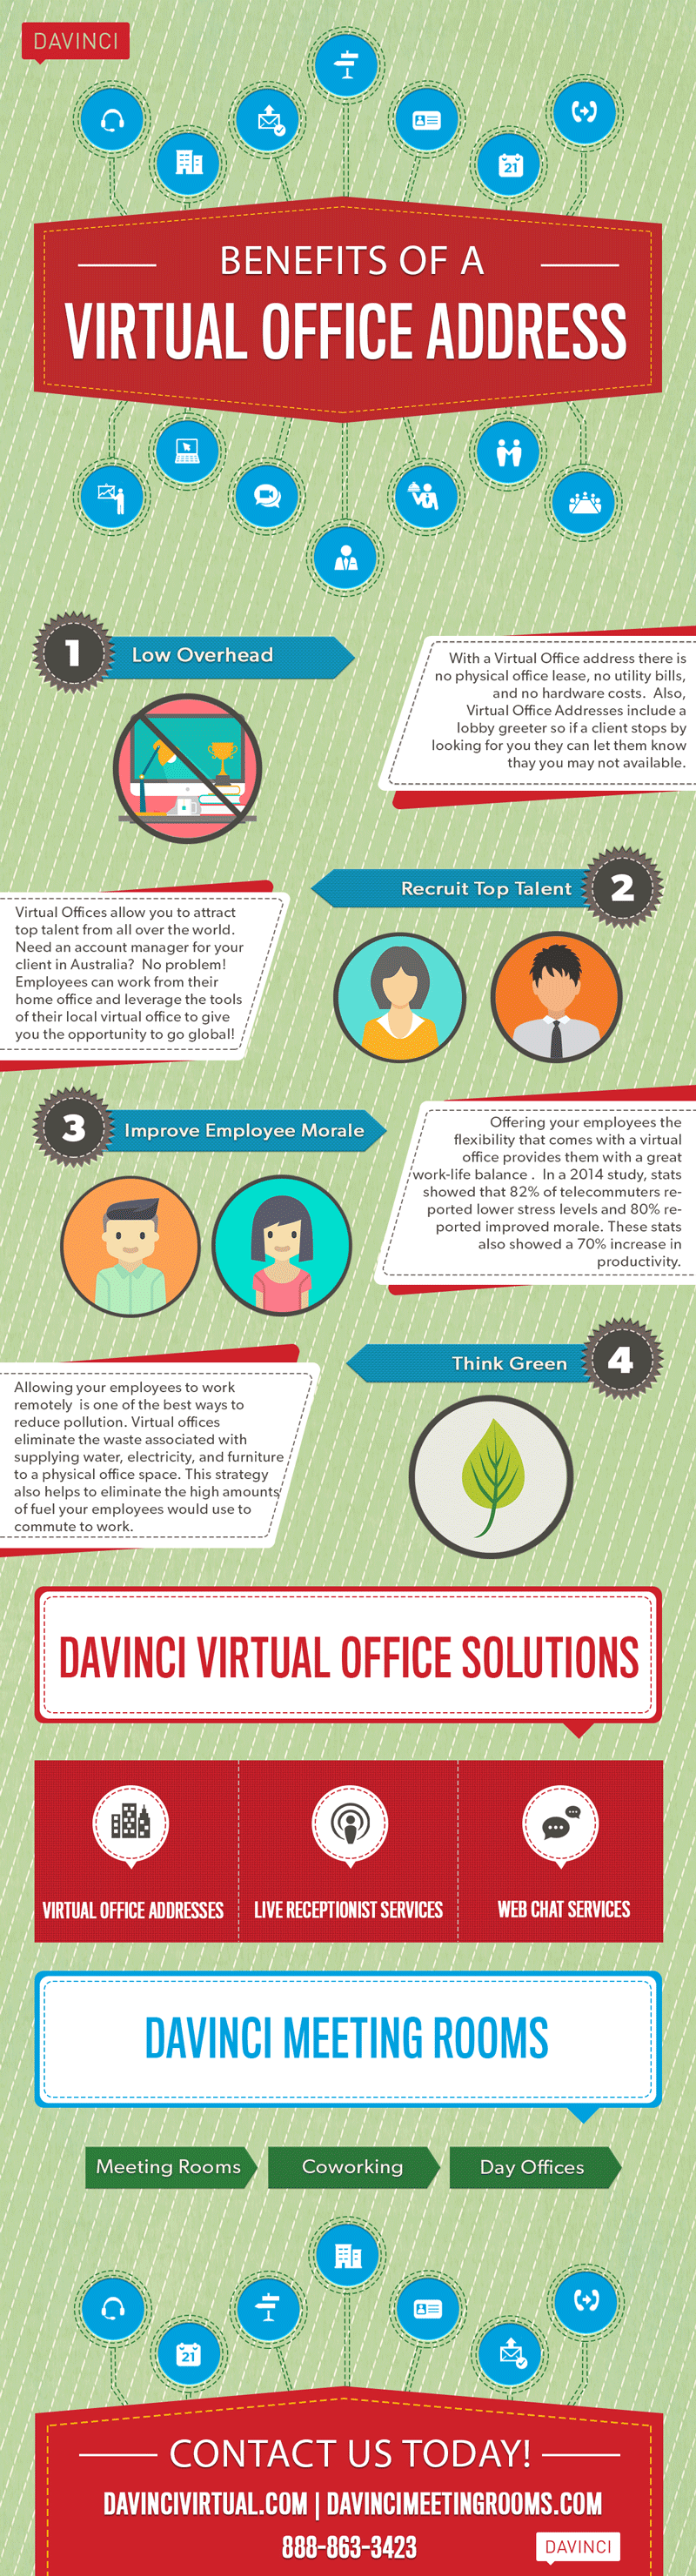 Benefits of a Virtual Office Address Infographic